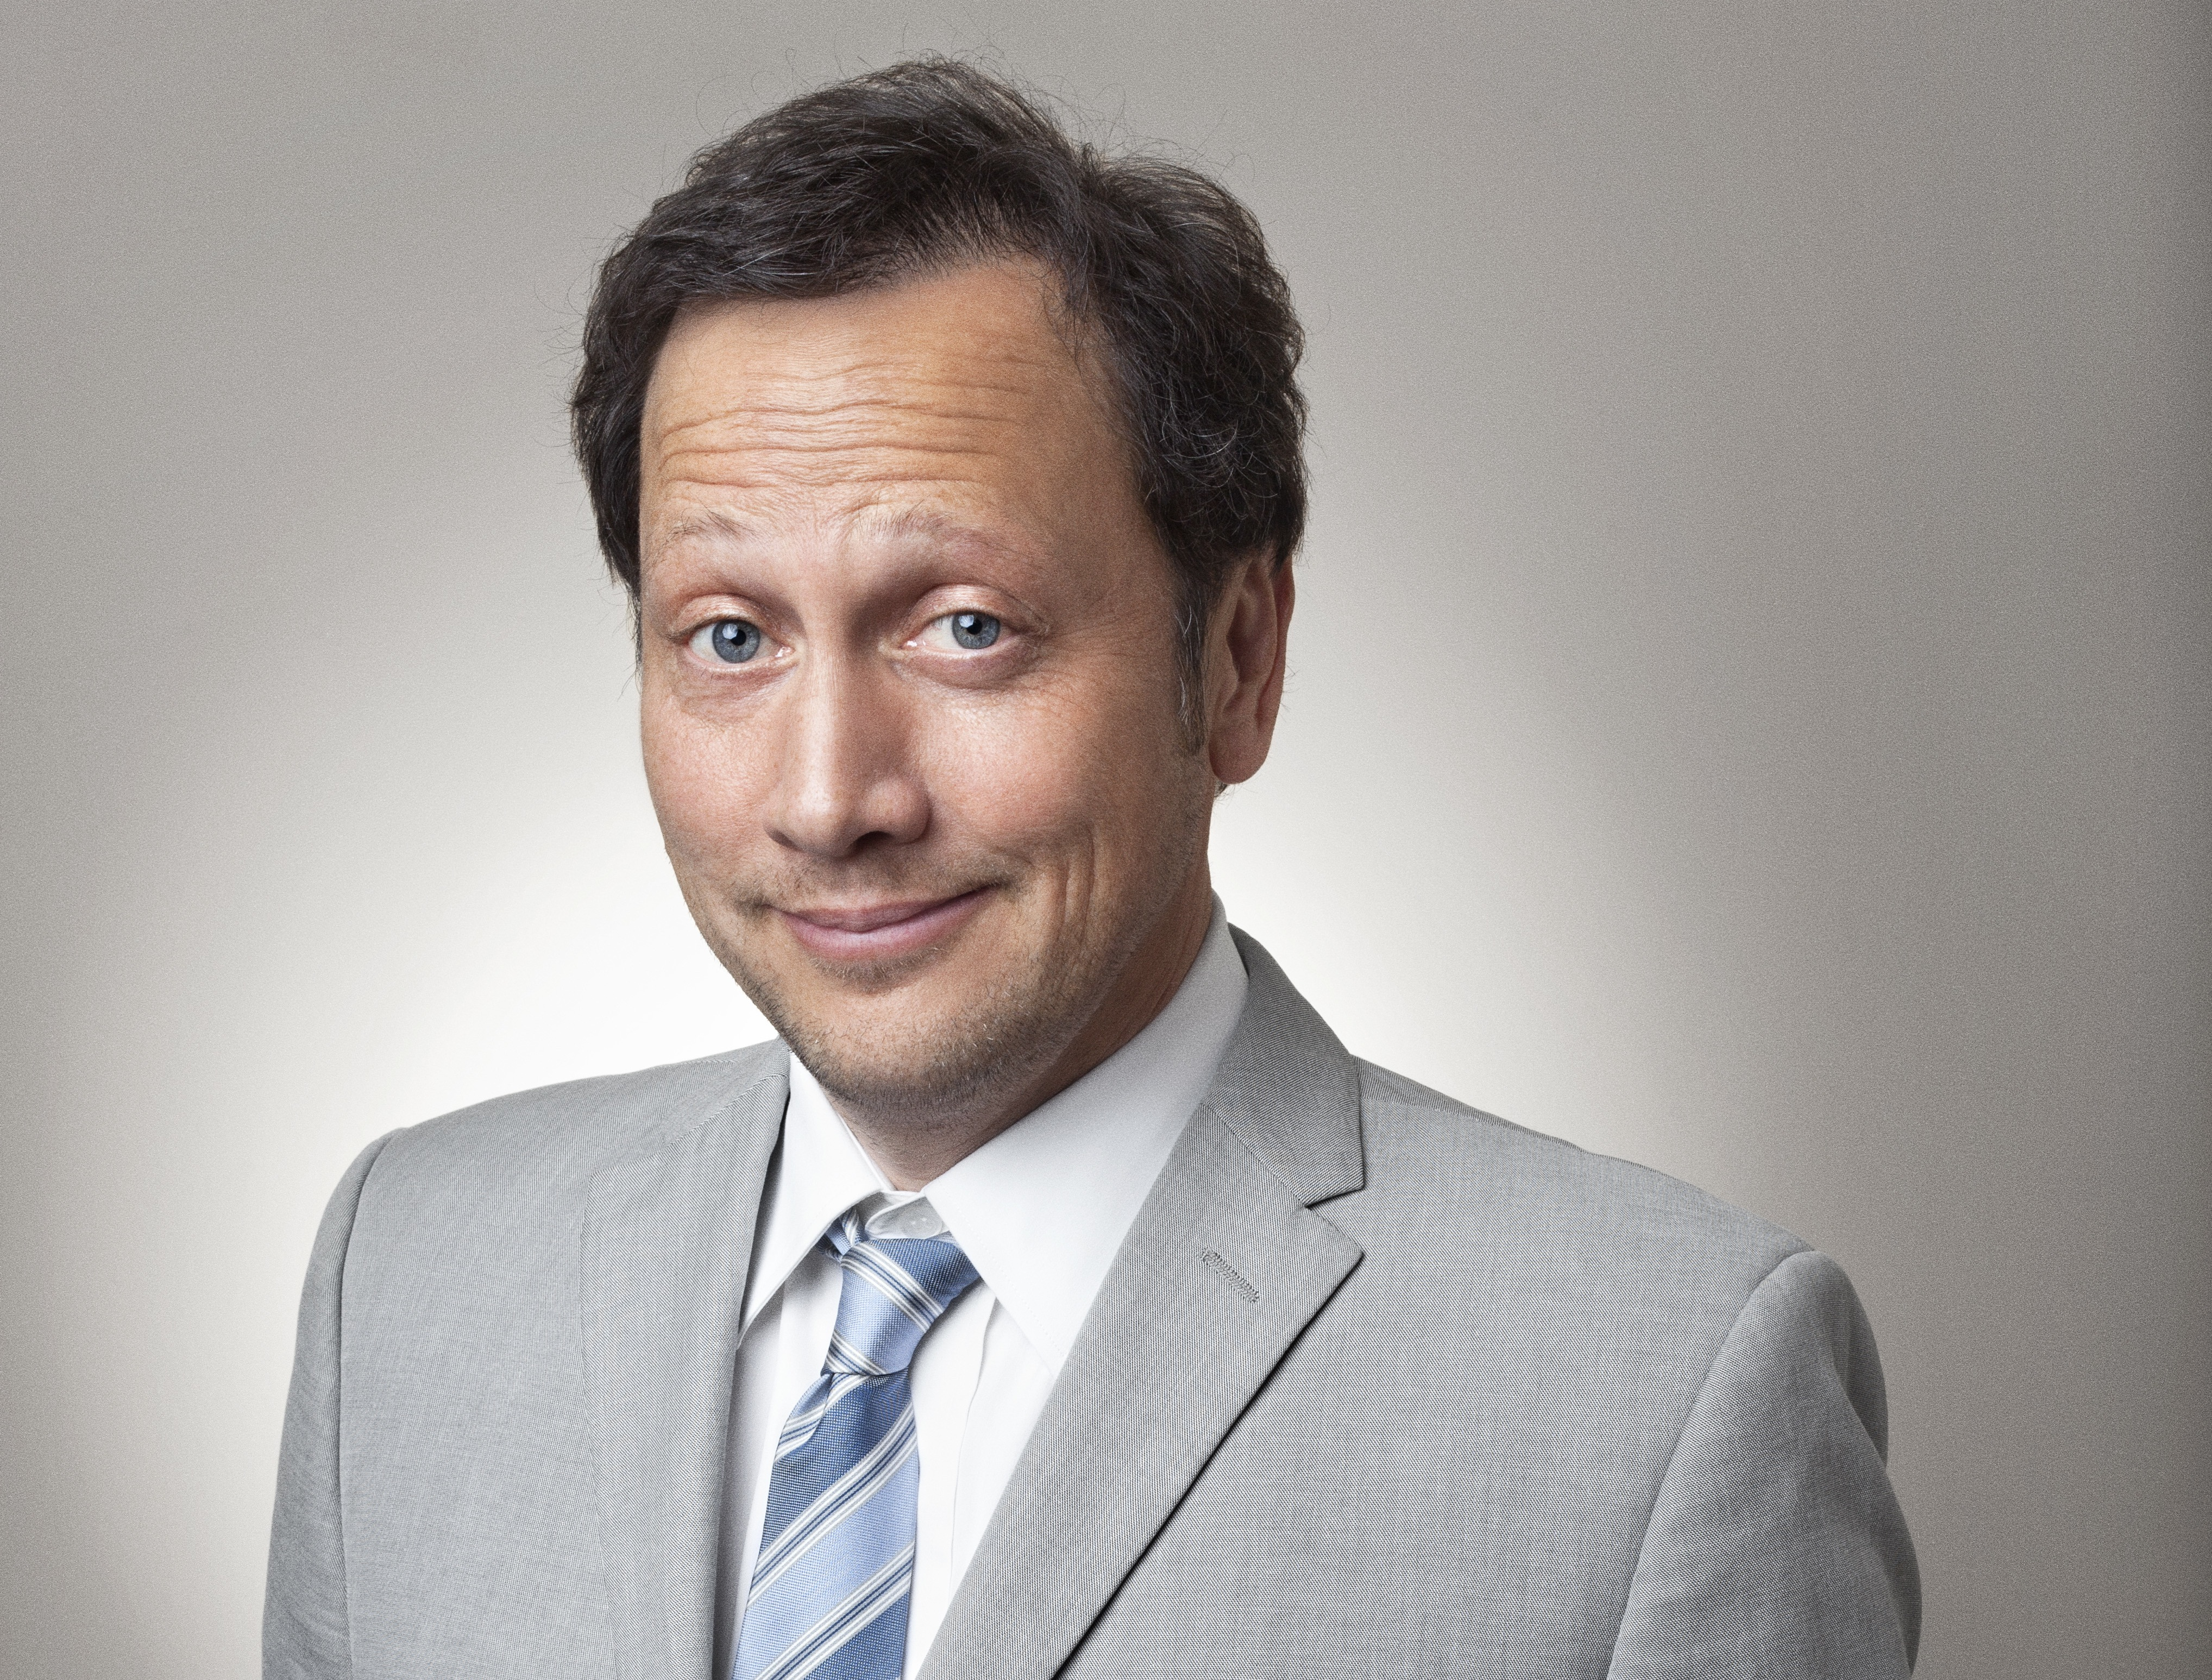 rob schneider 2016rob schneider movies, rob schneider 2016, rob schneider filme, rob schneider height, rob schneider daughter, rob schneider 2017, rob schneider kino, rob schneider carrot, rob schneider stapler, rob schneider фильмы, rob schneider wiki, rob schneider net worth, rob schneider home alone 2, rob schneider sinemalar, rob schneider gigolo, rob schneider filmek, rob schneider best movies, rob schneider wikipedia, rob schneider south park derp, rob schneider soy sauce and the holocaust